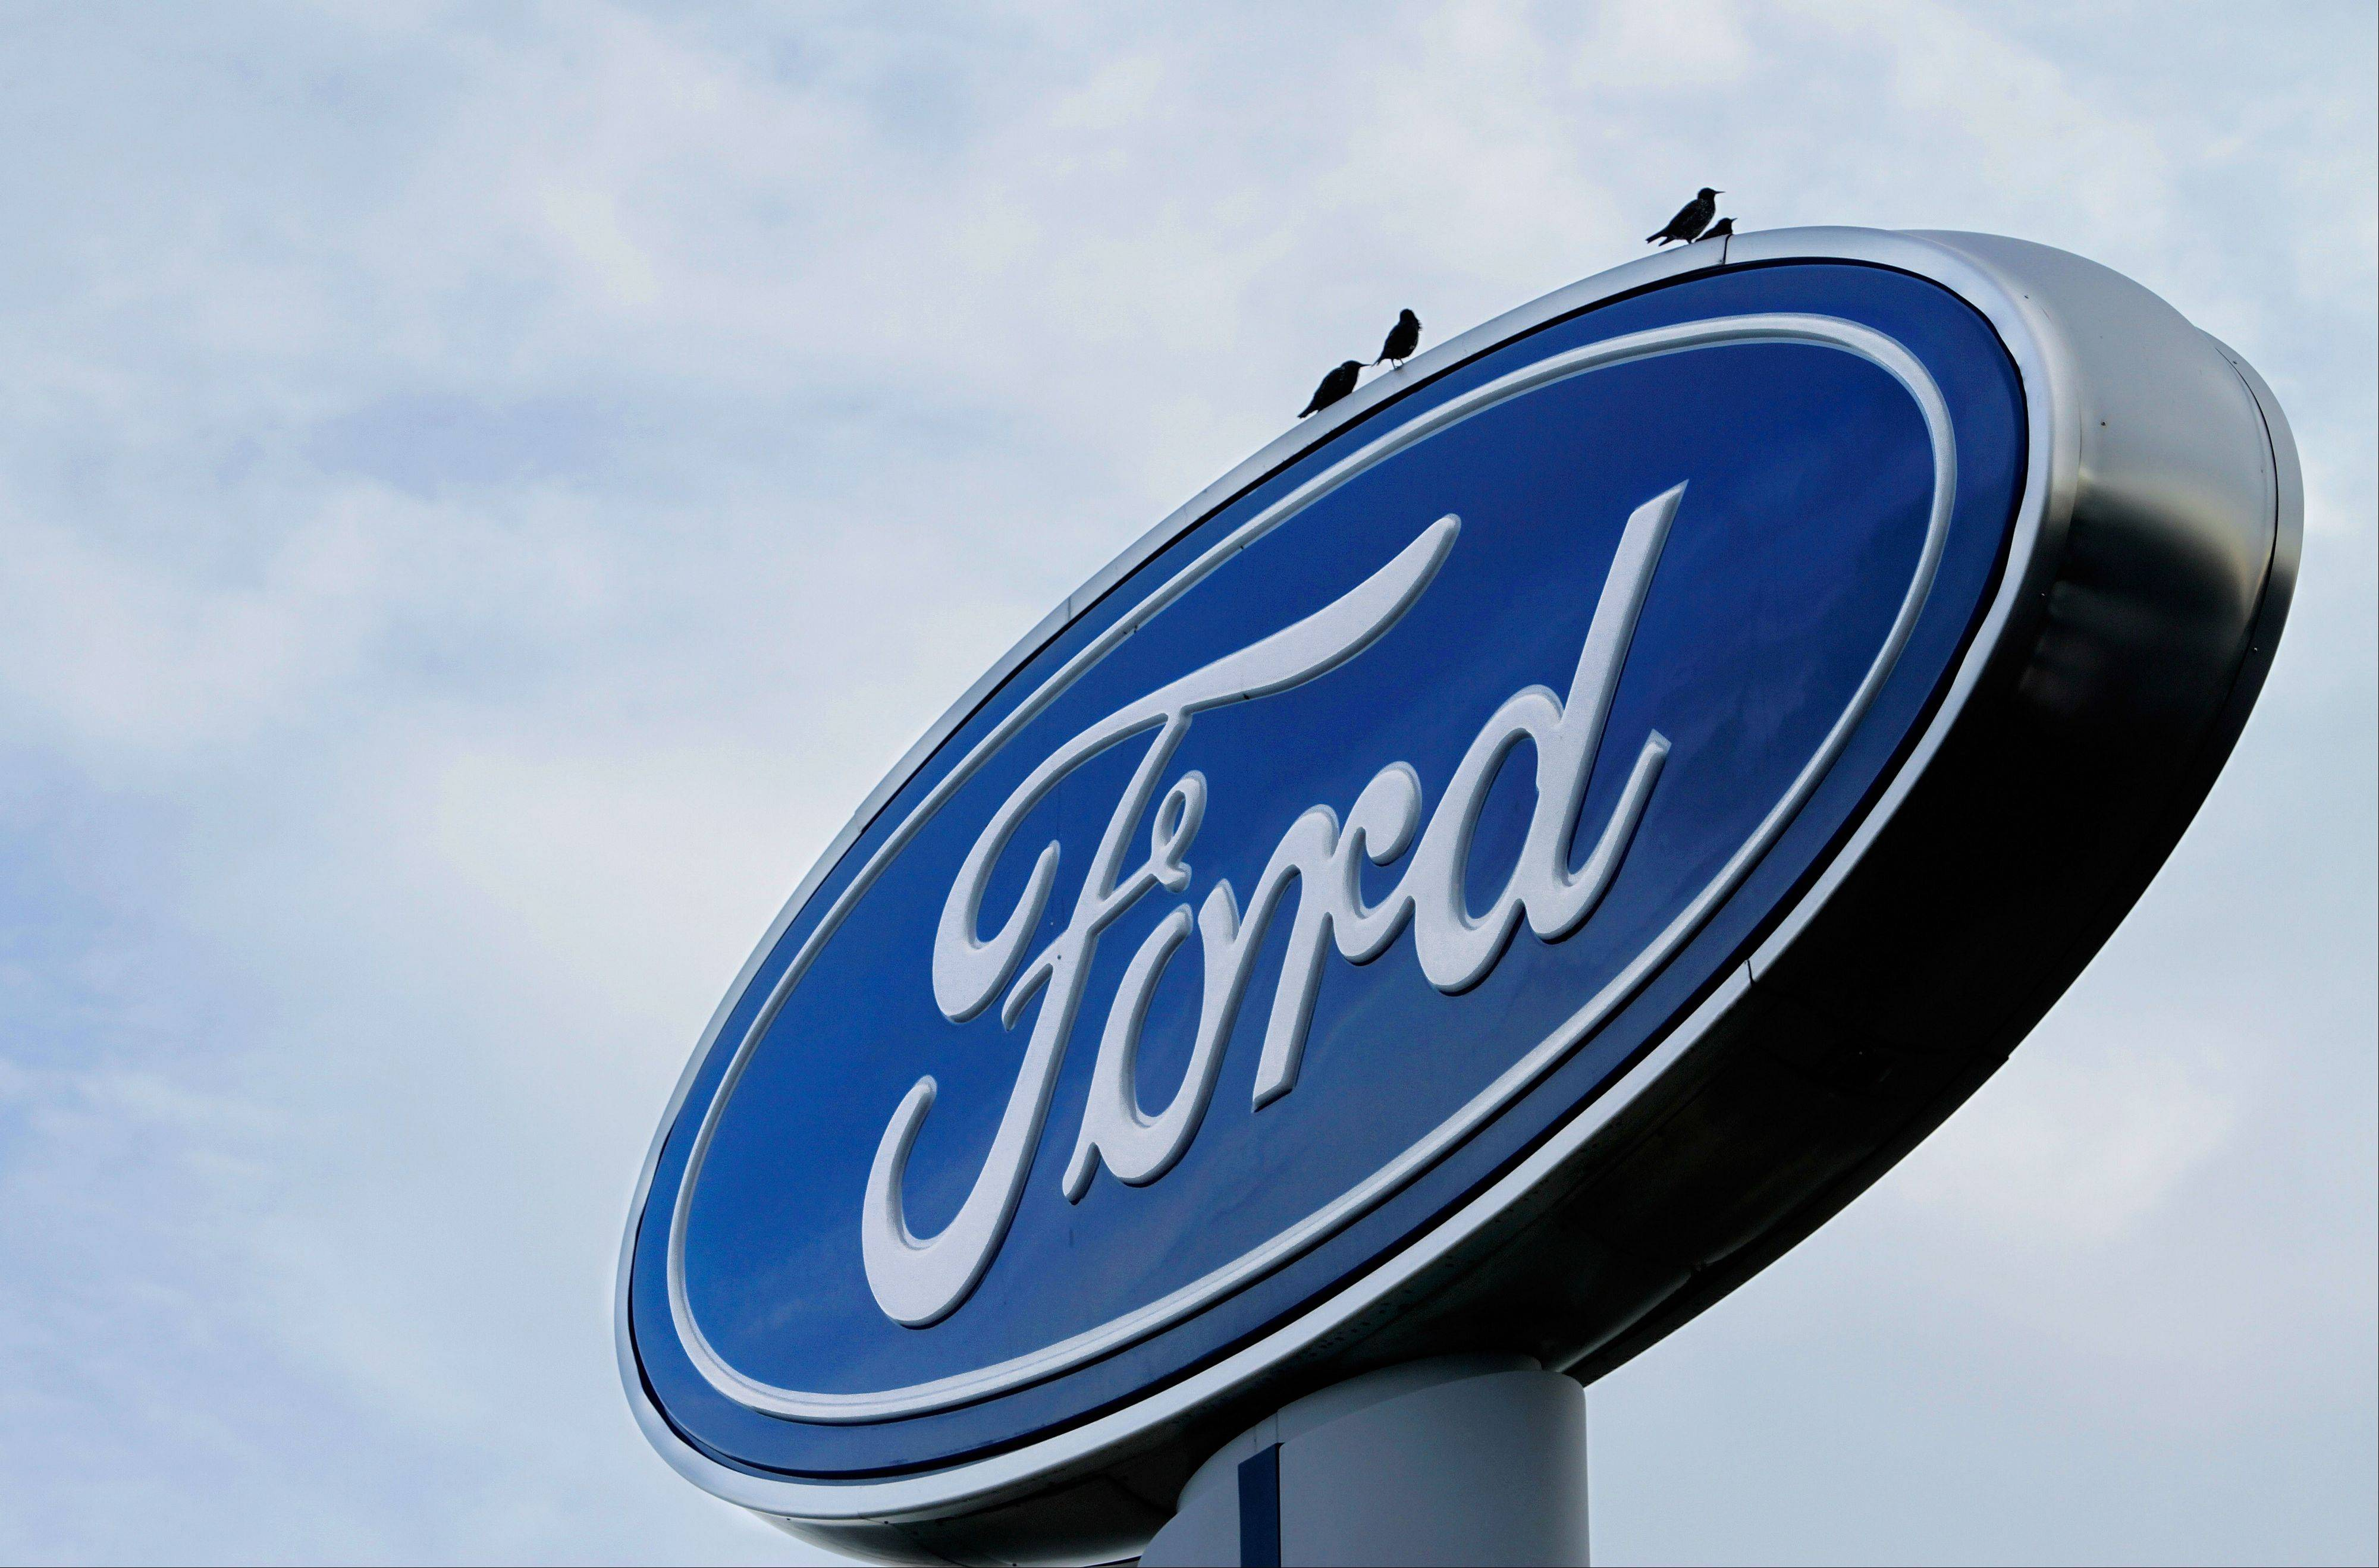 Ford Motor Co. said Tuesday its U.S. sales rose 6 percent in July, boosted by small cars and SUVs.